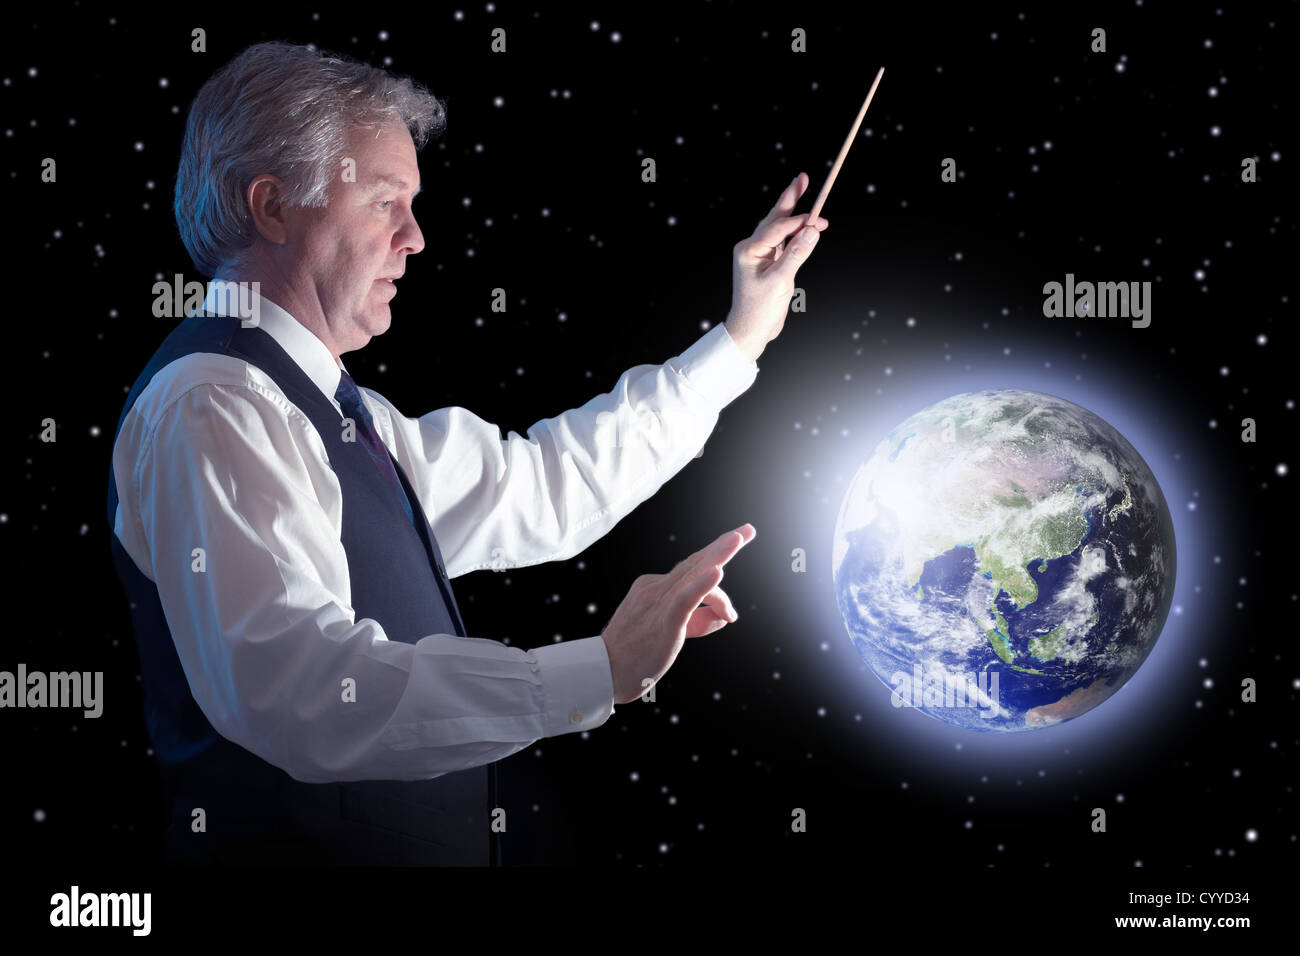 Business man trying to influence the blue planet - Earth globe image provided by NASAhttp://www.earthobservatory.nasa.gov. - Stock Image